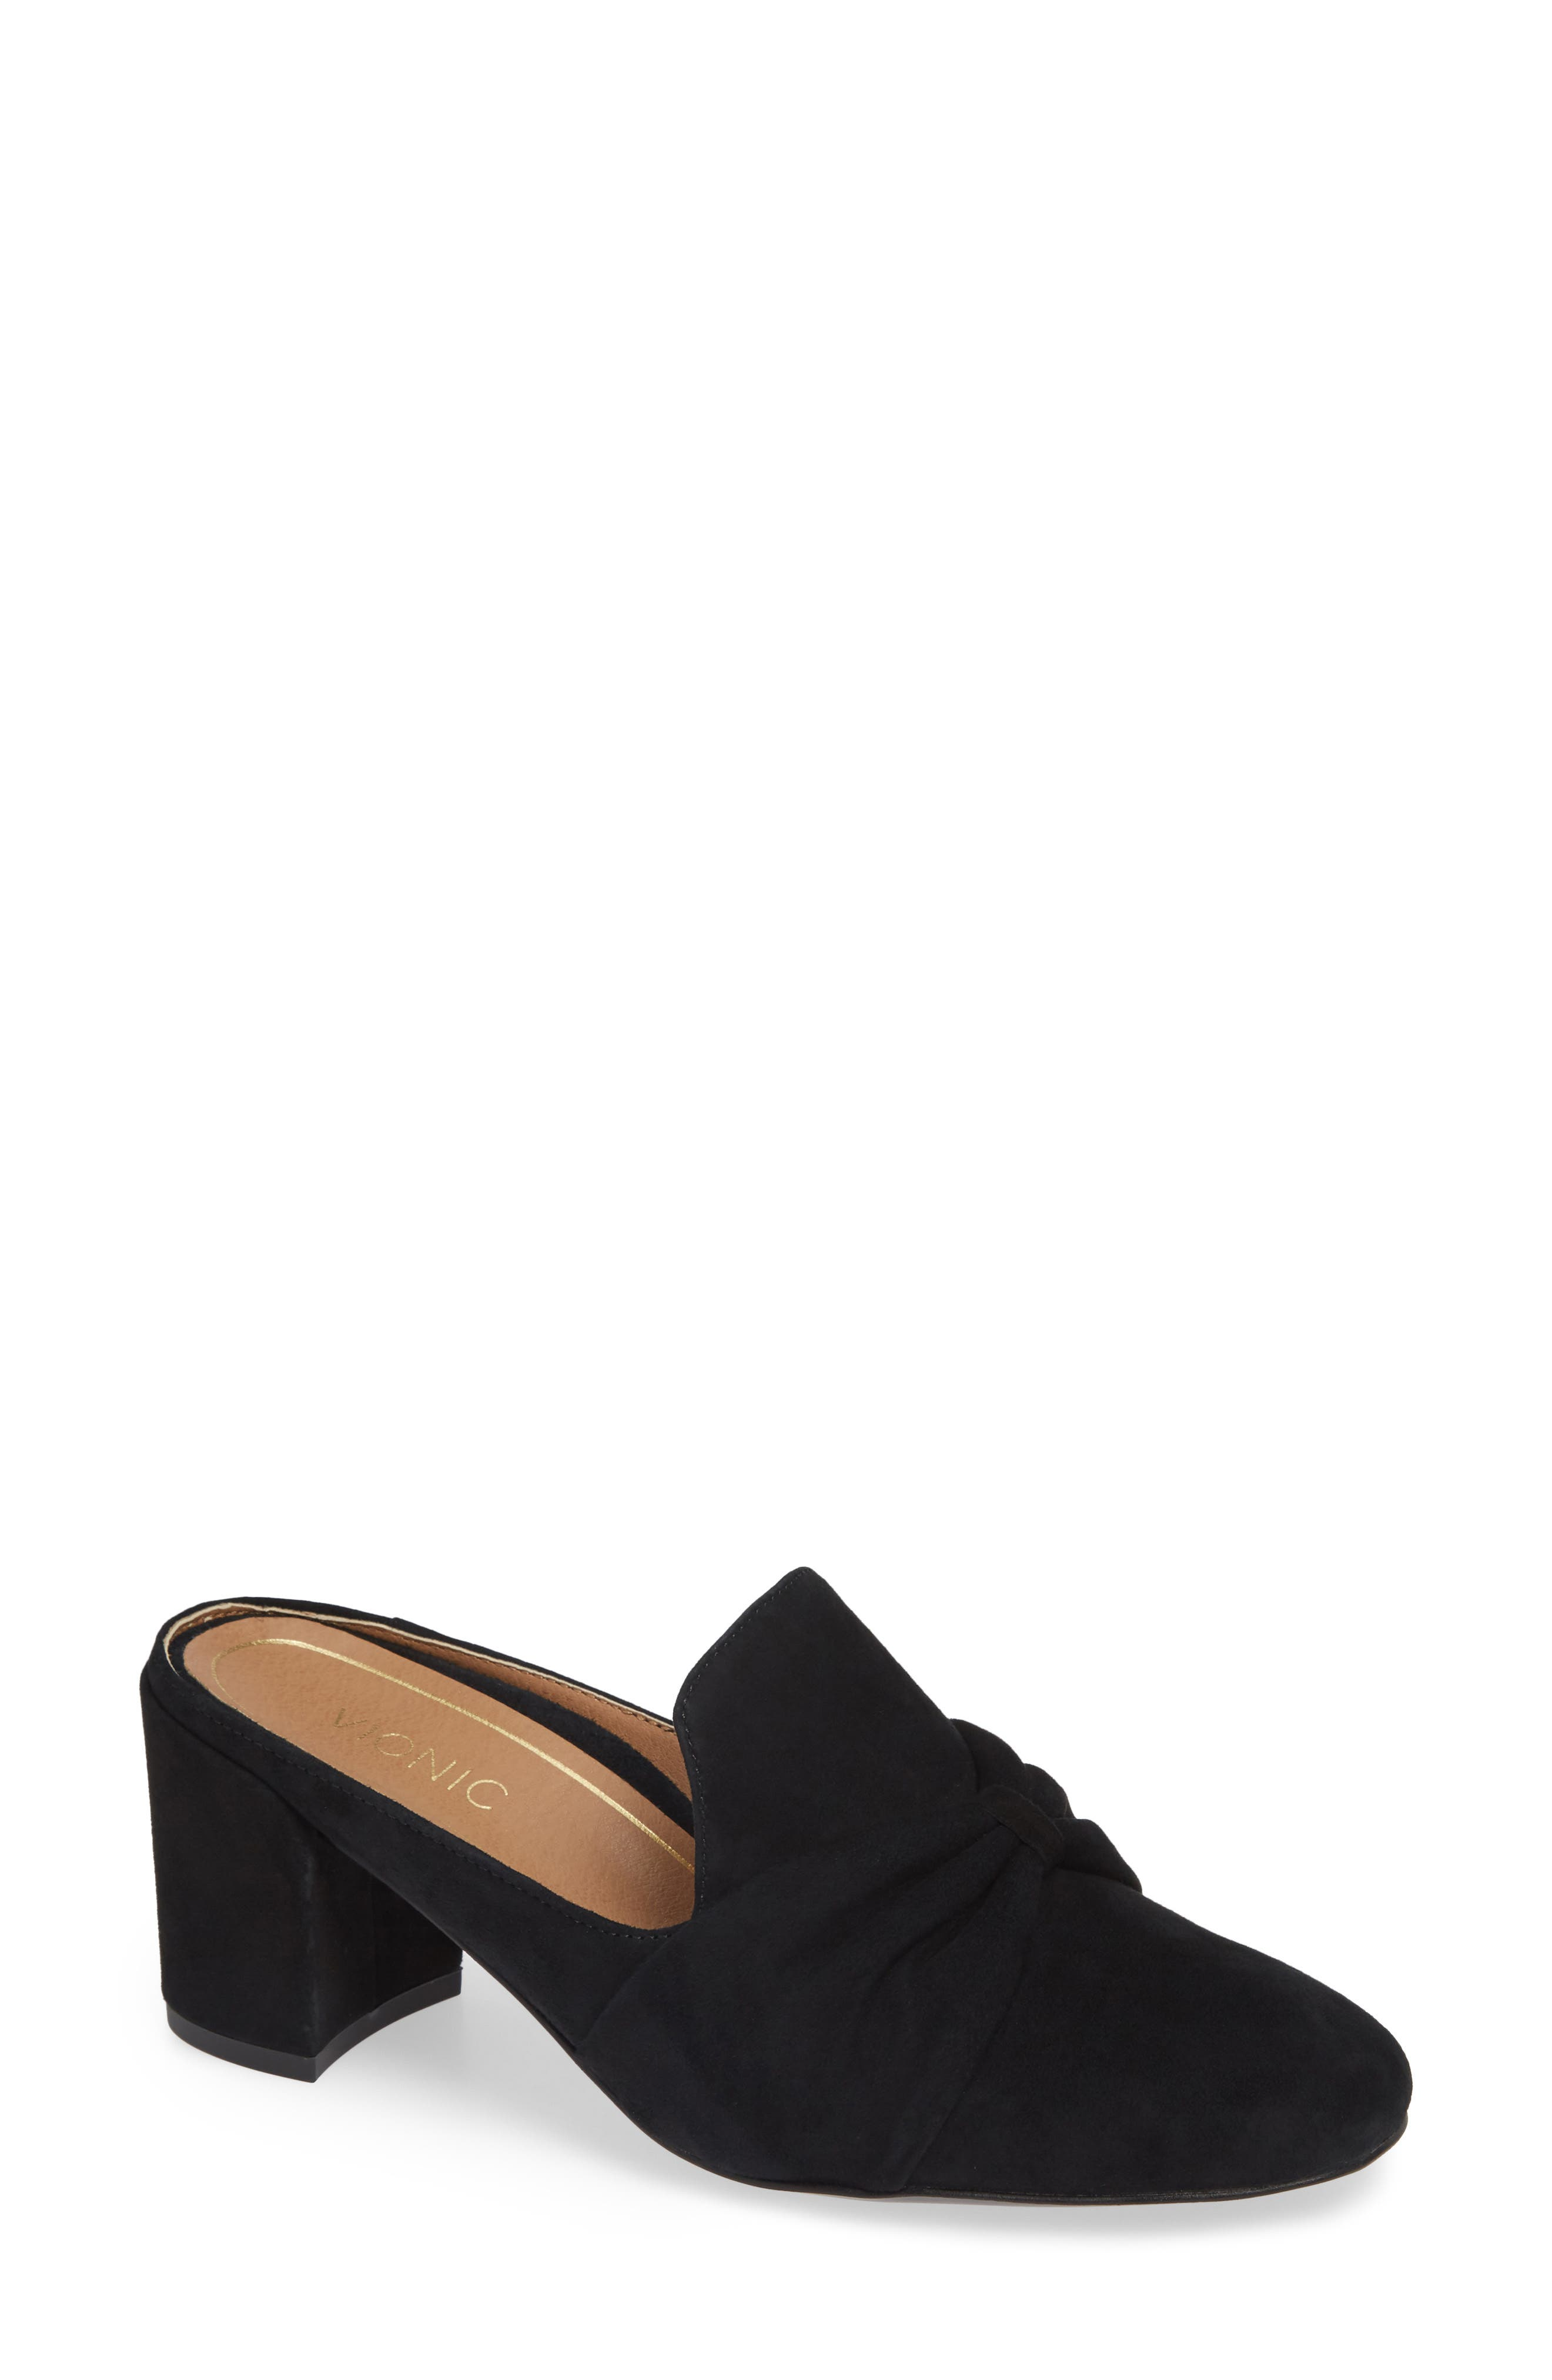 Presley Mule,                             Main thumbnail 1, color,                             BLACK SUEDE